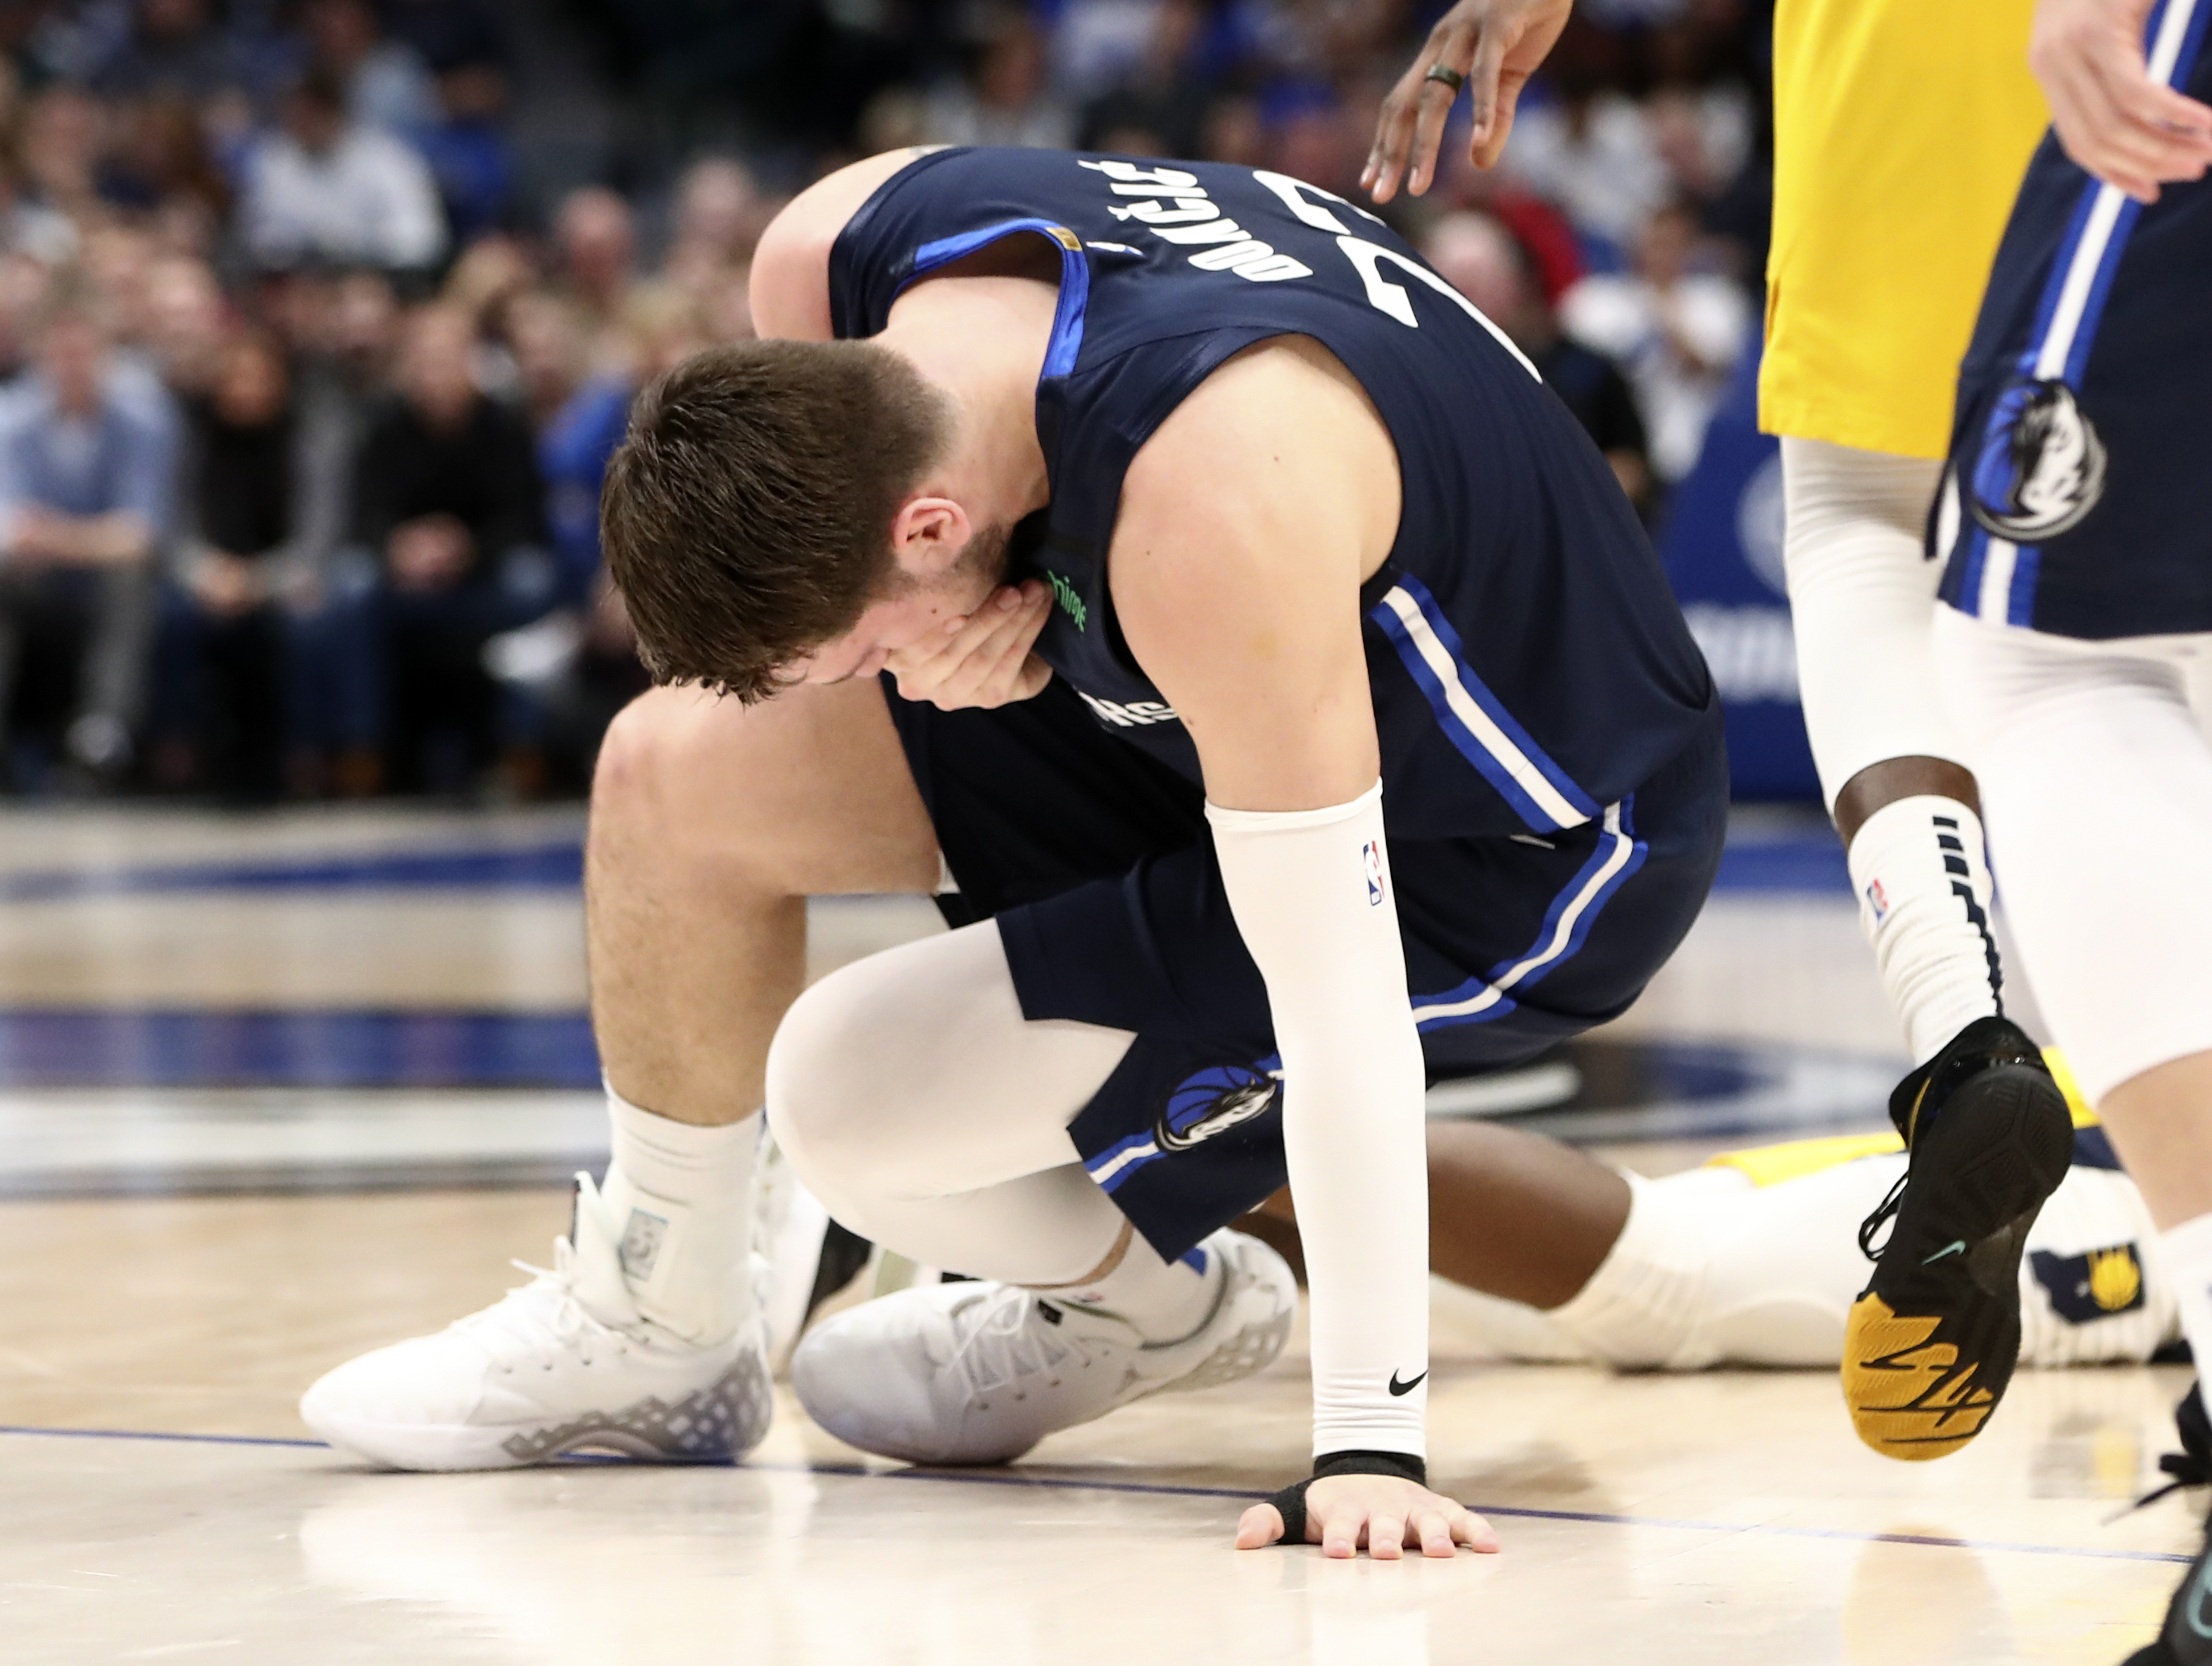 Sports Injury Claims: How to Determine Liability and Compensation in the USA